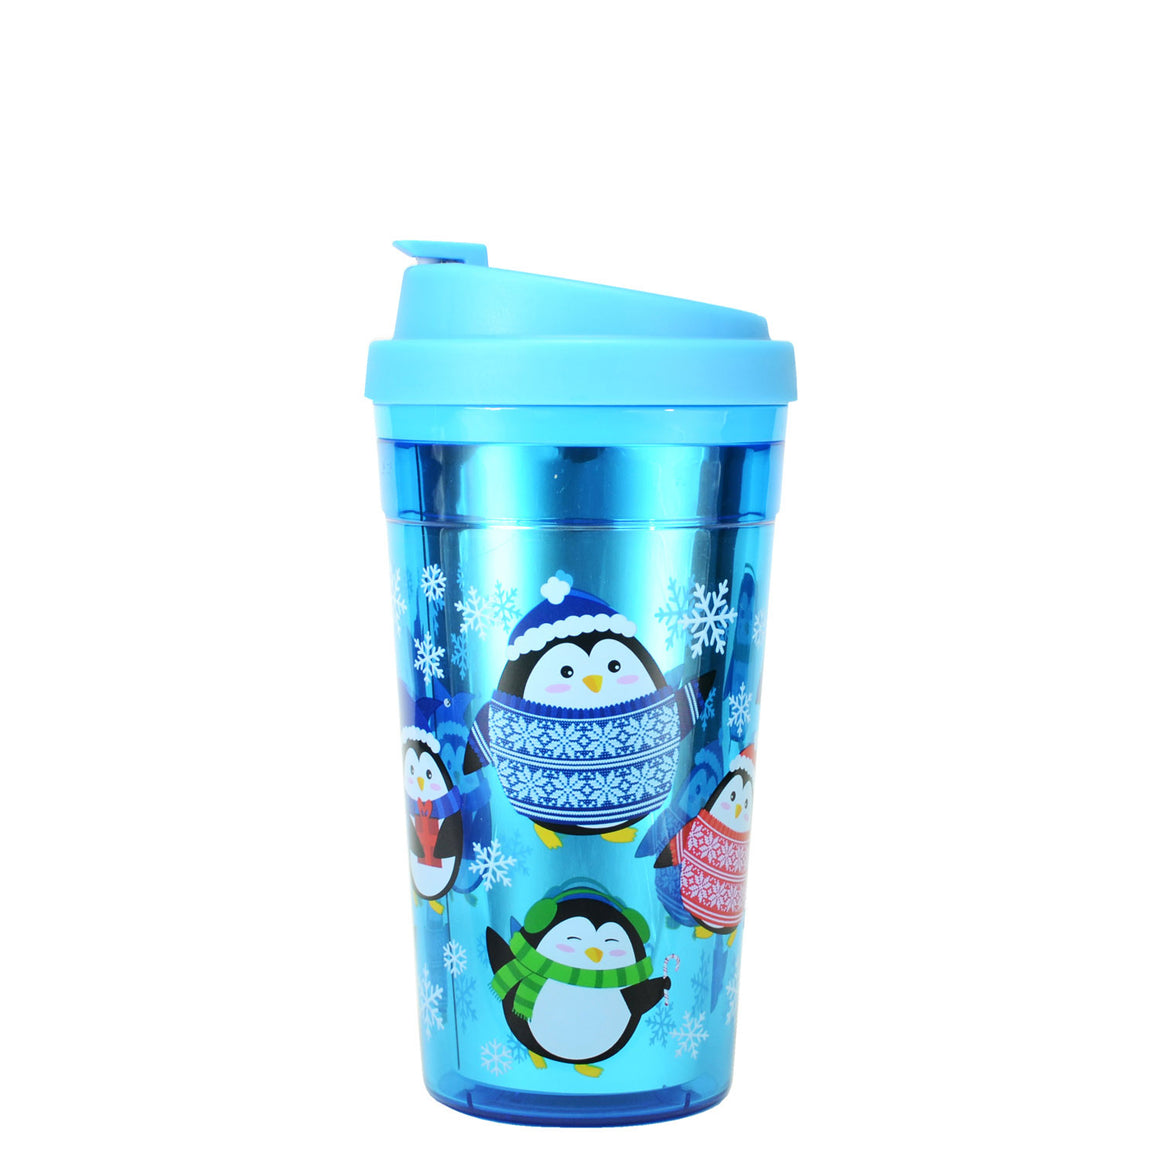 Bright Blue / Penguins Reflections 15 Oz Holiday Coffee Mug at Cool Gear Winter Holiday